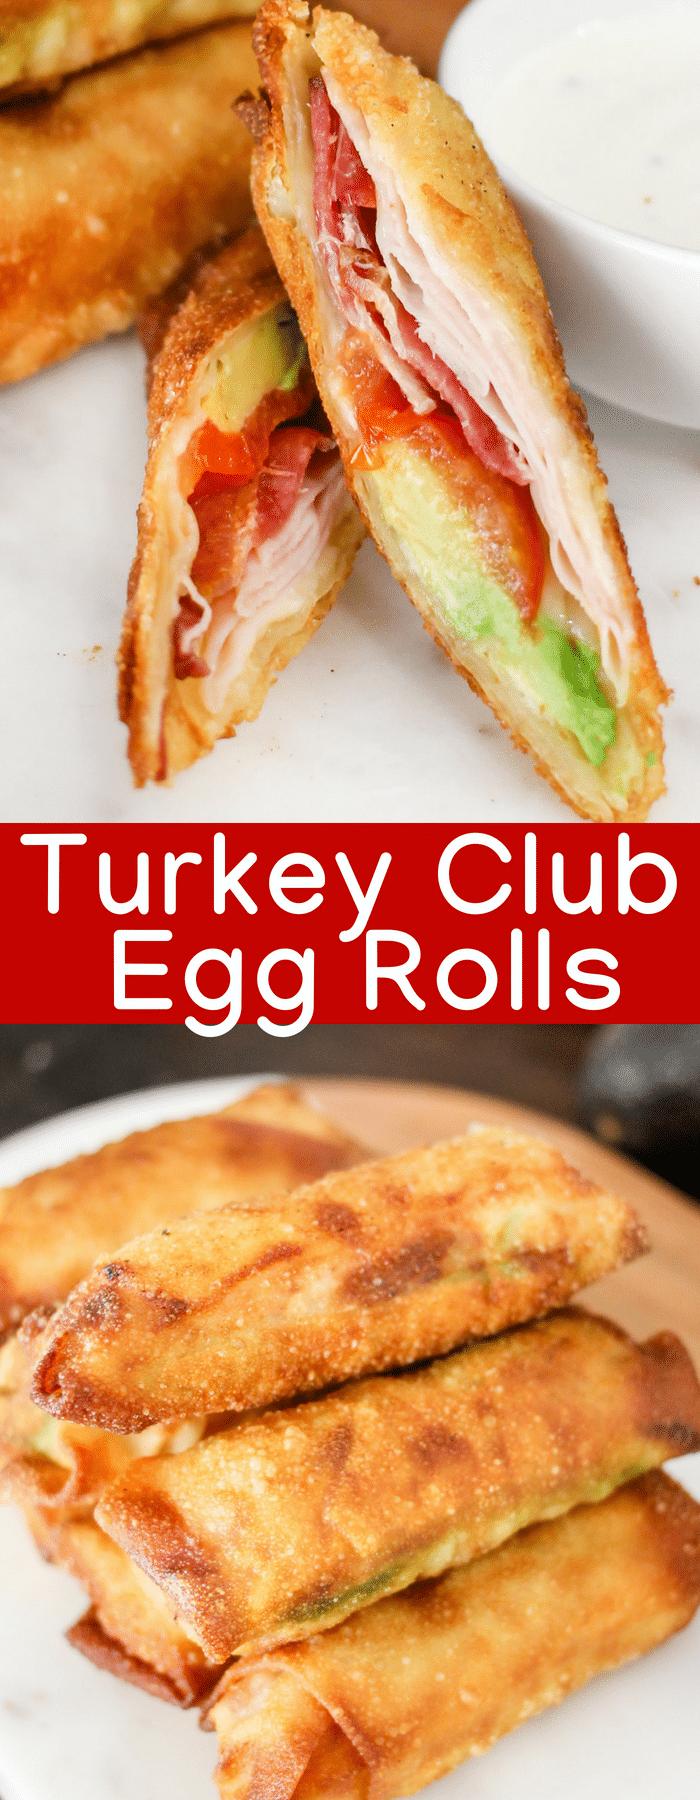 Ready for a Turkey Club Sandwich taken to the next level? These crispy Turkey Club Egg Rolls are filled with turkey, bacon, tomato, avocado, cheese, and a special sauce! You will LOVE them!